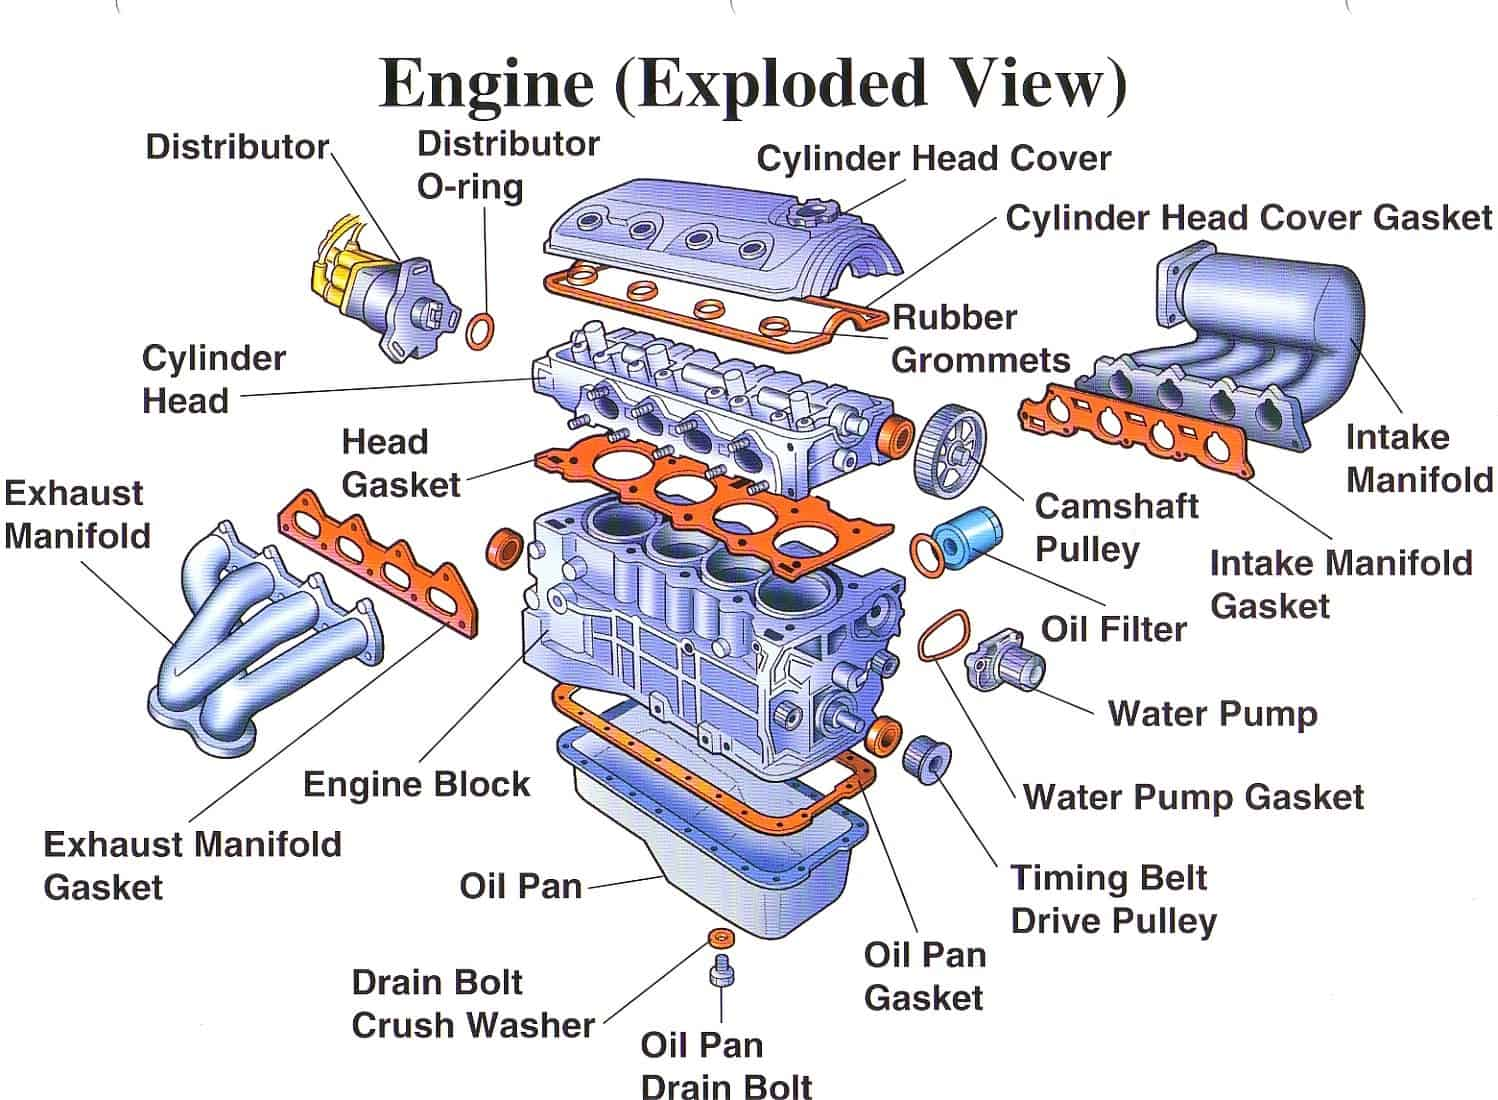 hight resolution of car engine block diagram data visualization infographic car engine management system block diagram car engine